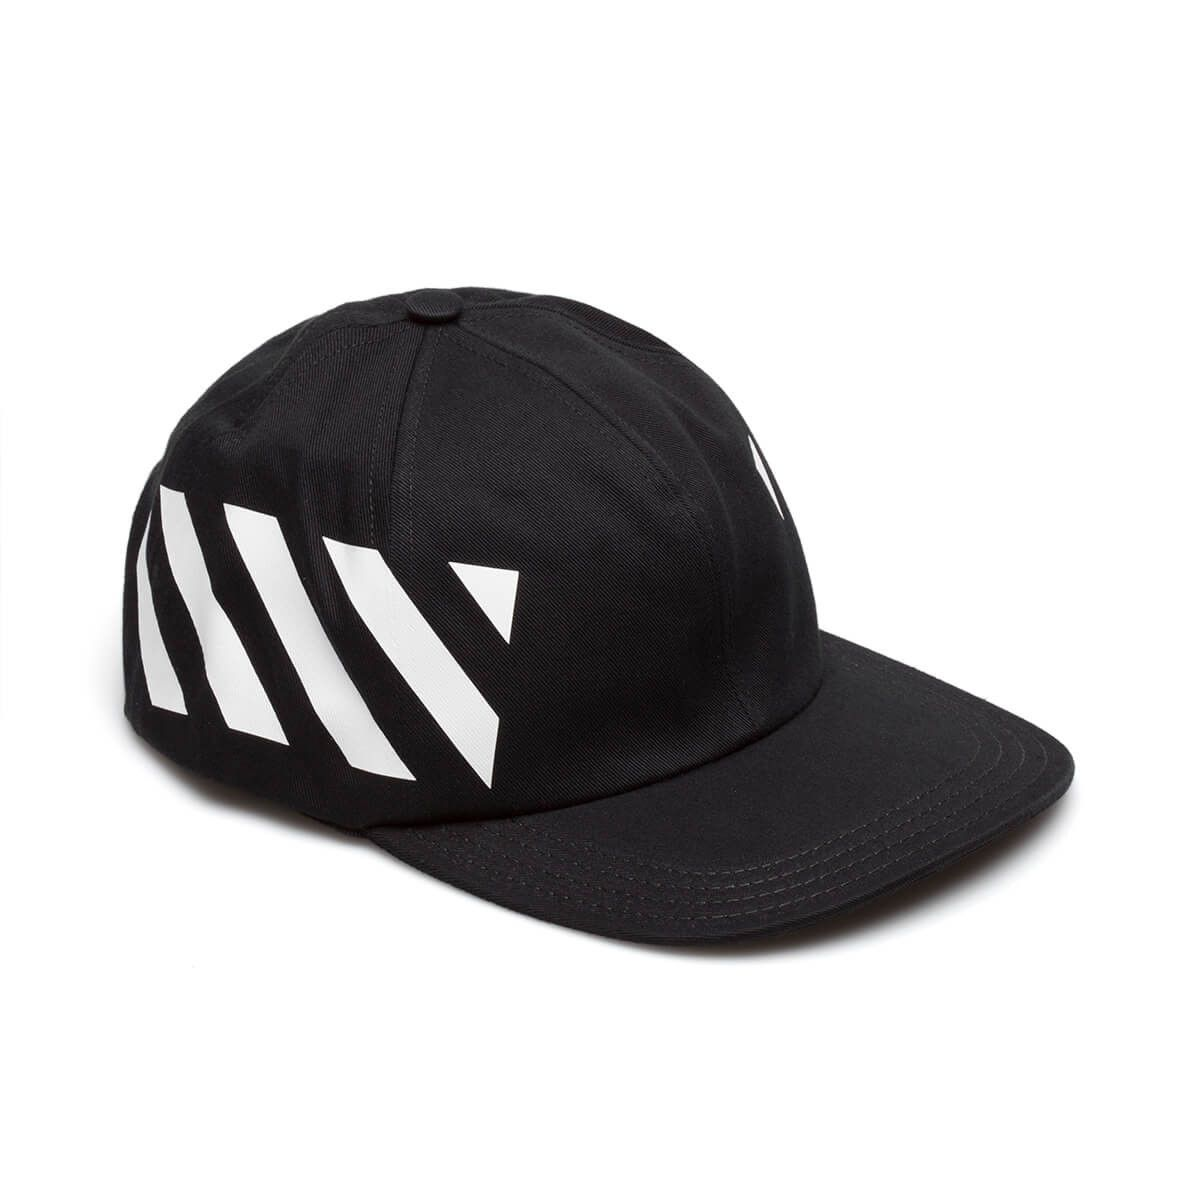 9e40d0e54b0 Diag Baseball cap from the Pre S S2019 Off-White c o Virgil Abloh in ...